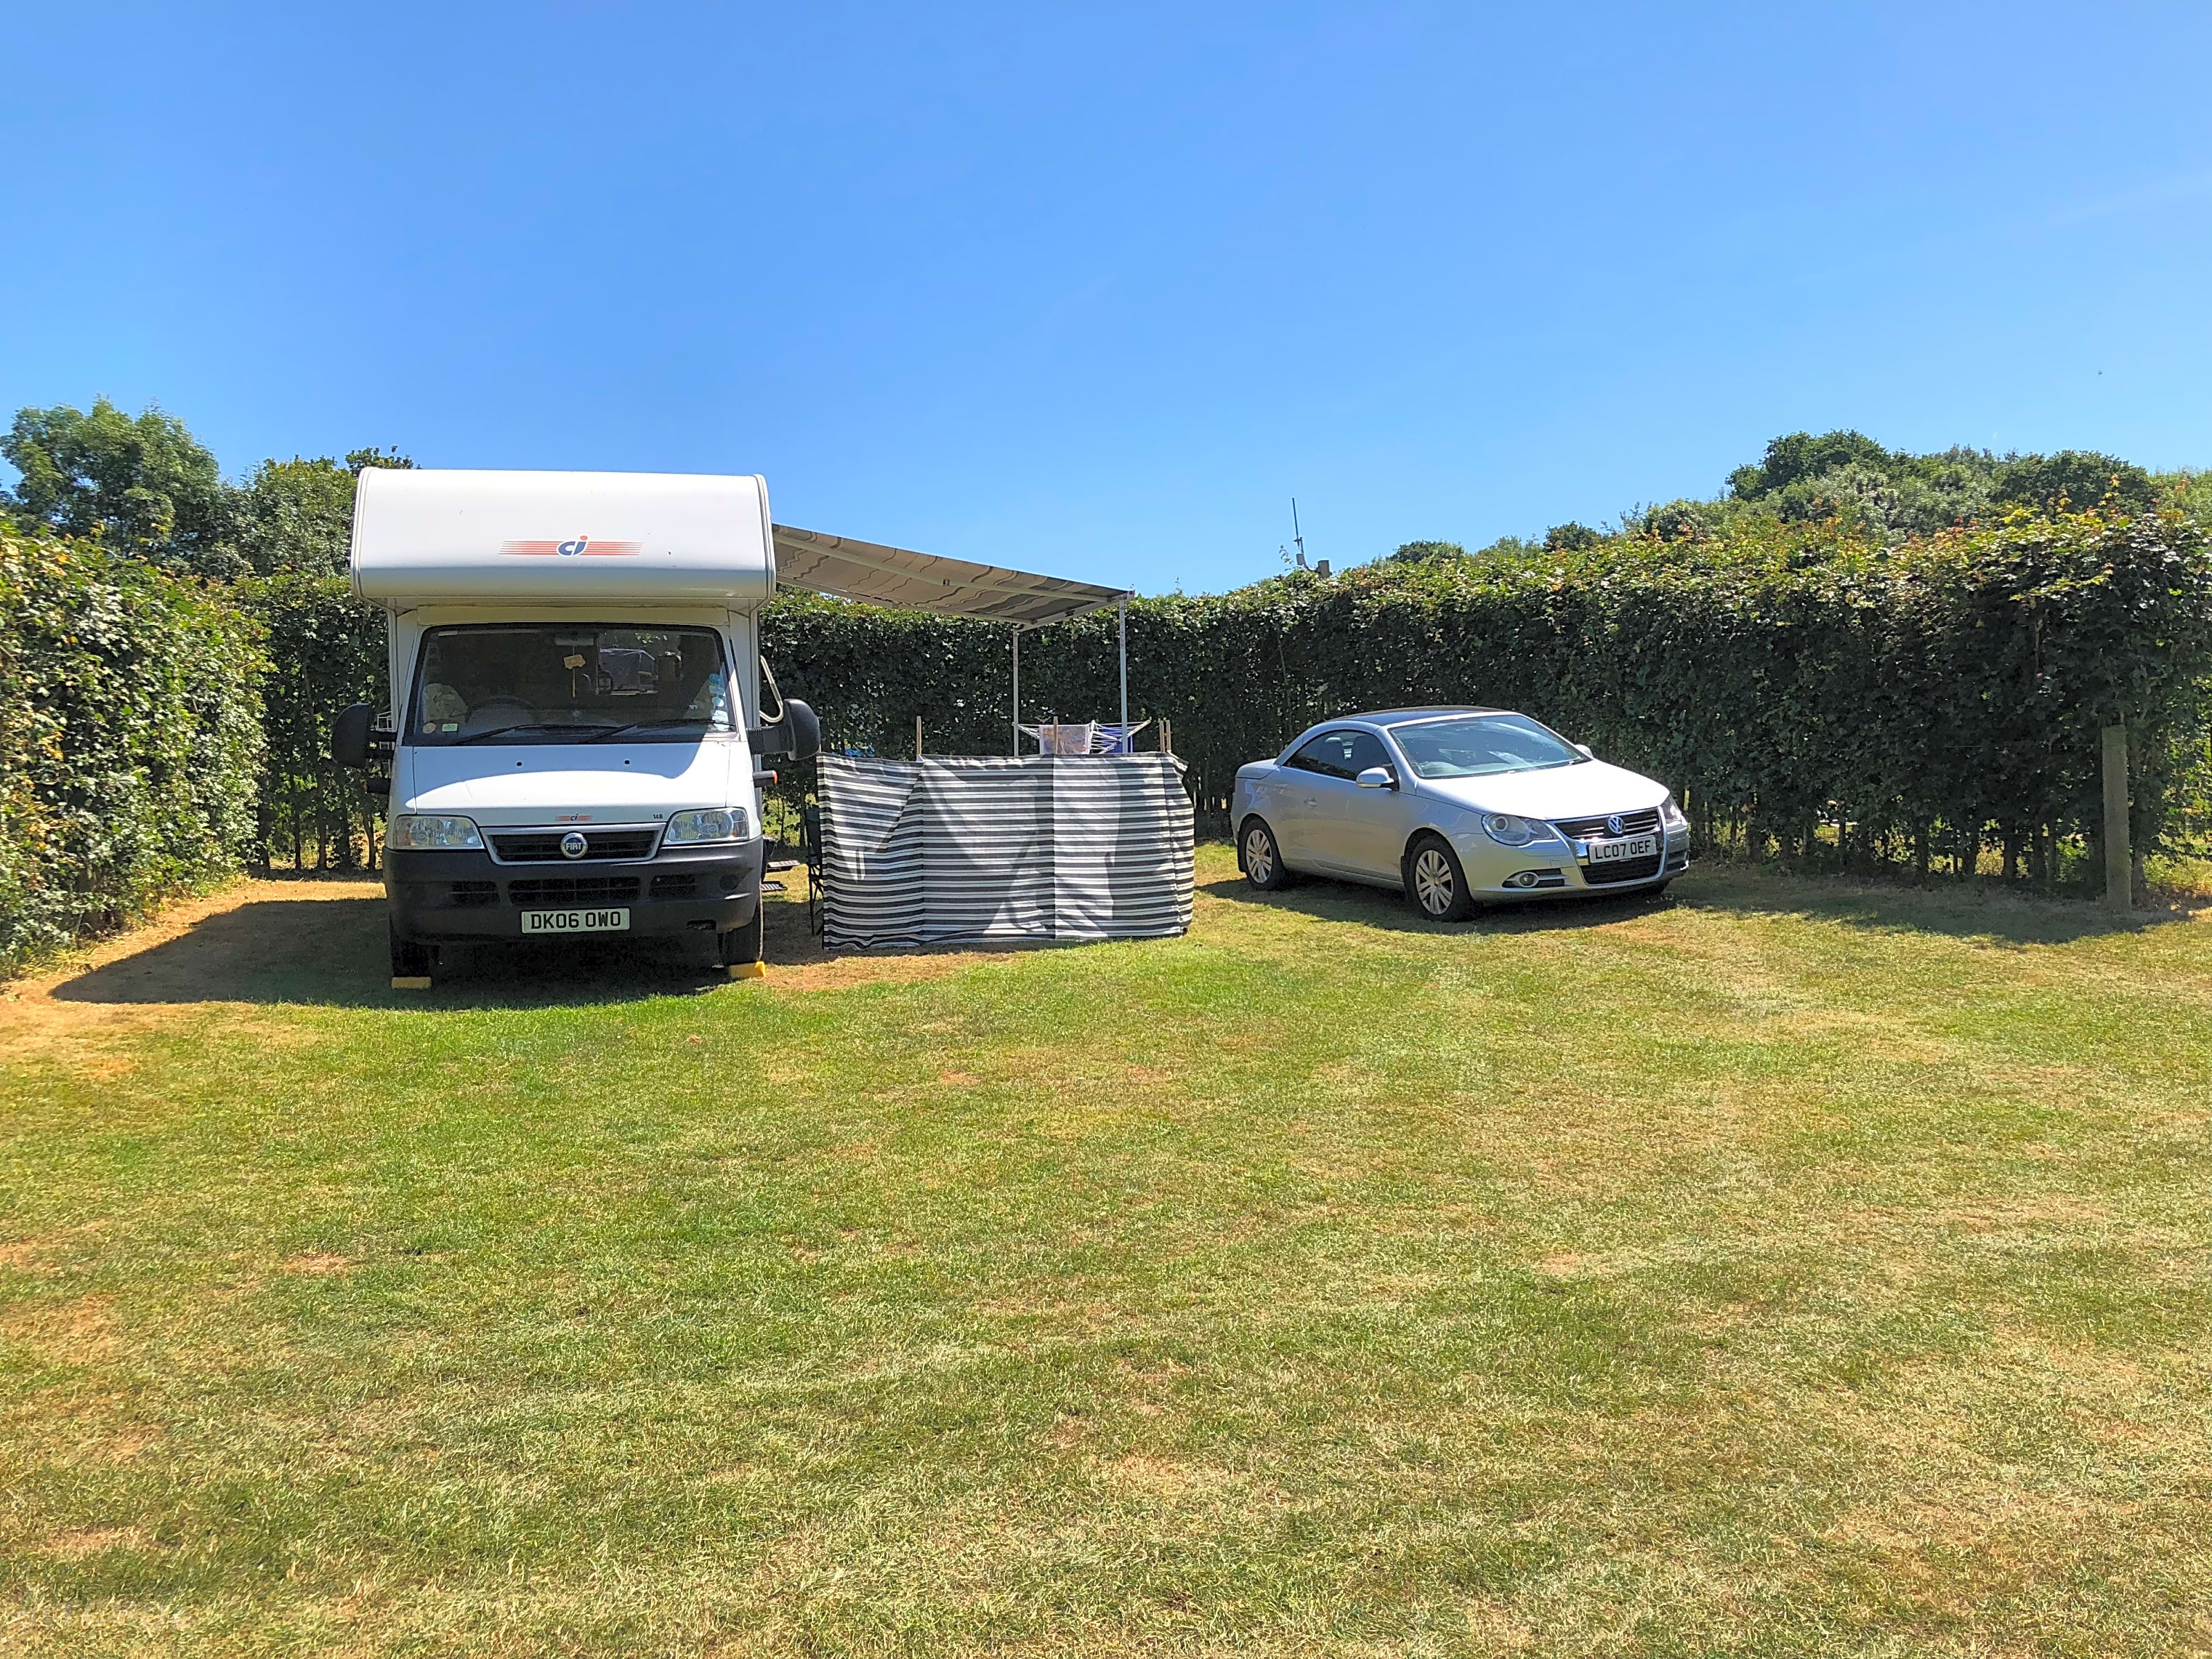 Exmouth Country Lodge and Prattshayes Campsite, Exeter